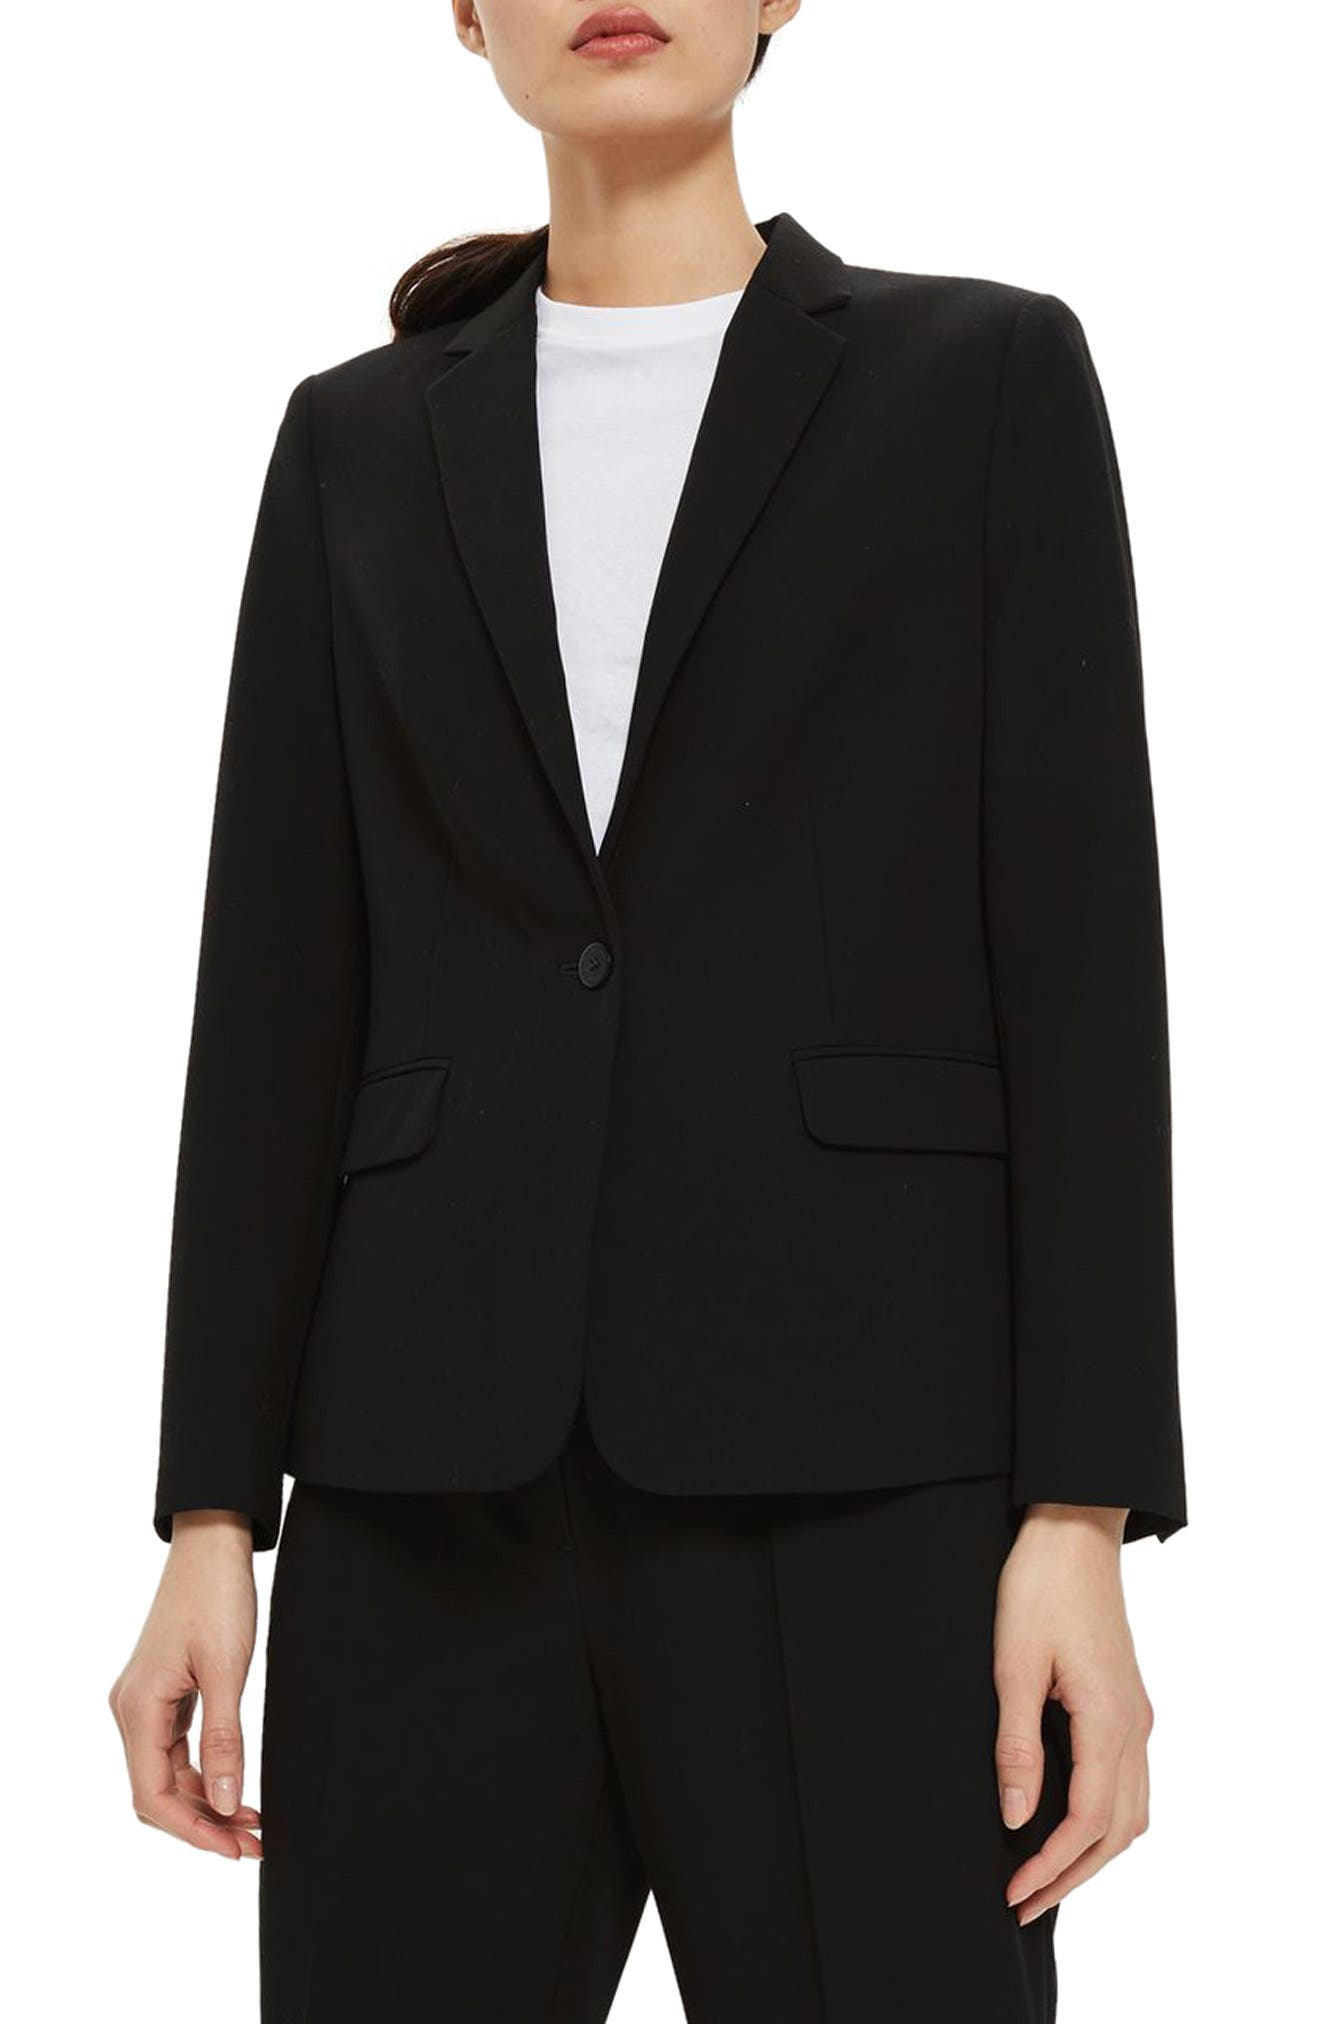 Single Breasted Suit Jacket,                         Main,                         color, Black